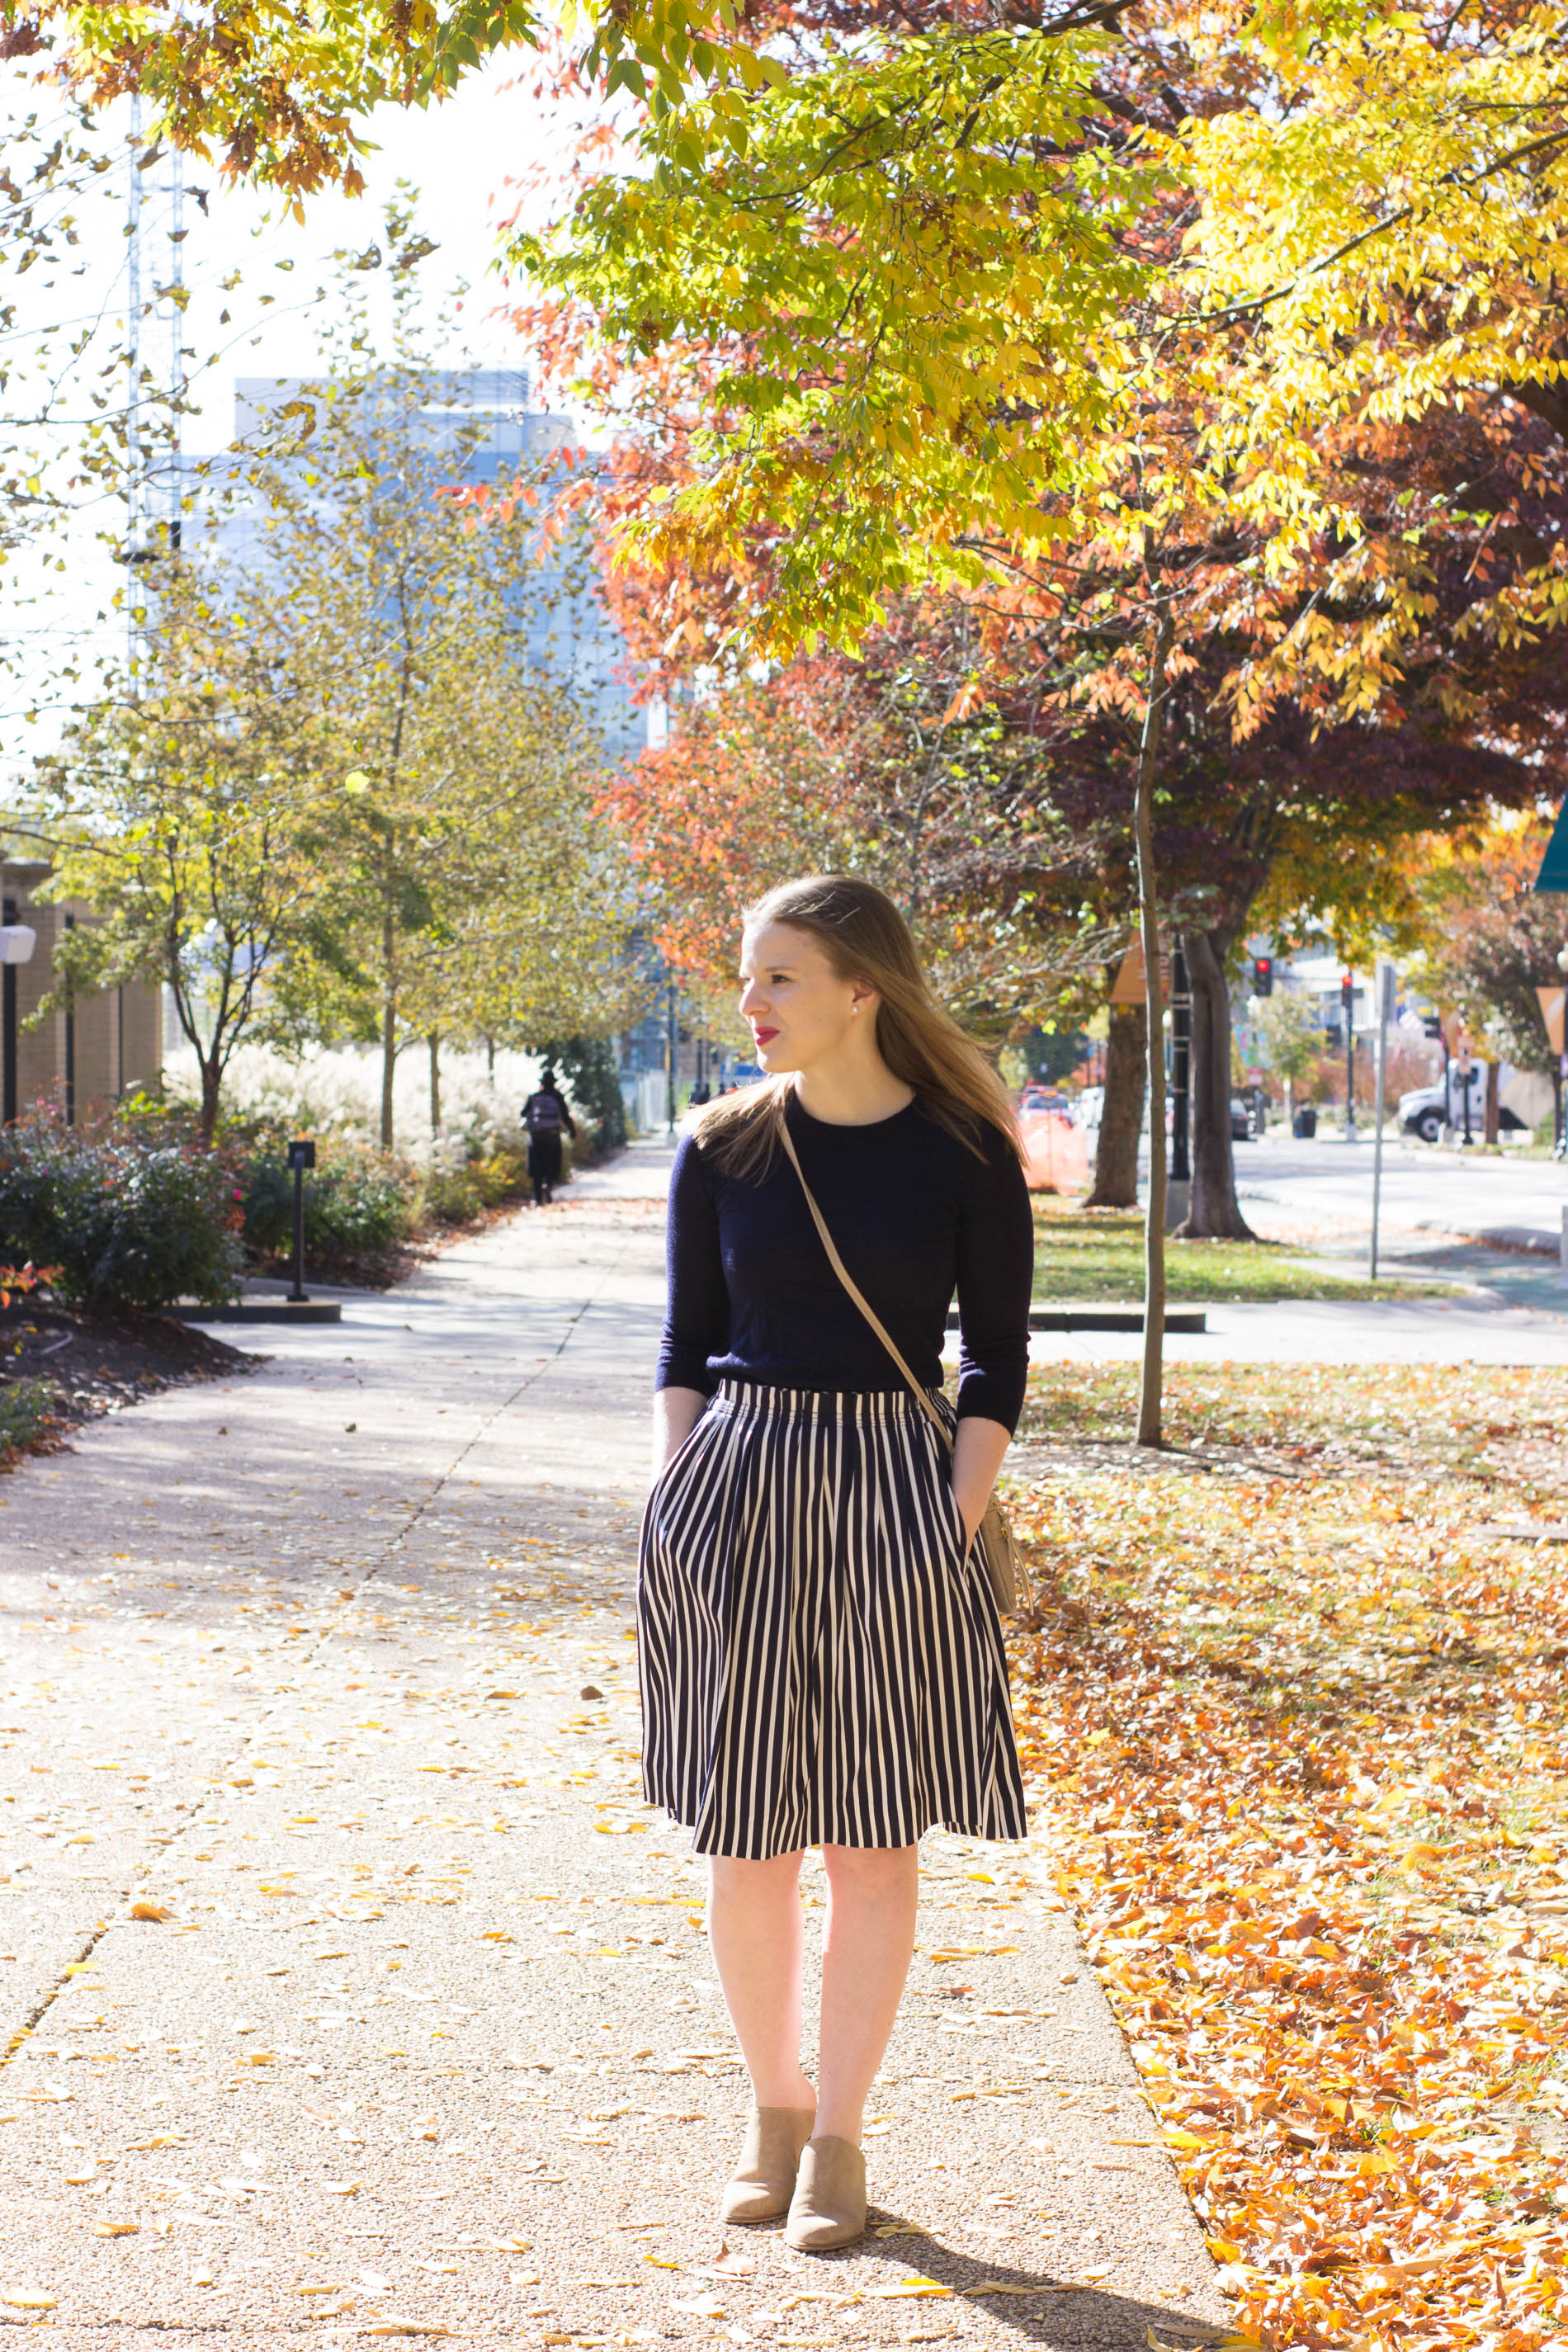 5 Easy Thanksgiving Outfit Ideas | Something Good, @danaerinw , women's fashion, fall style